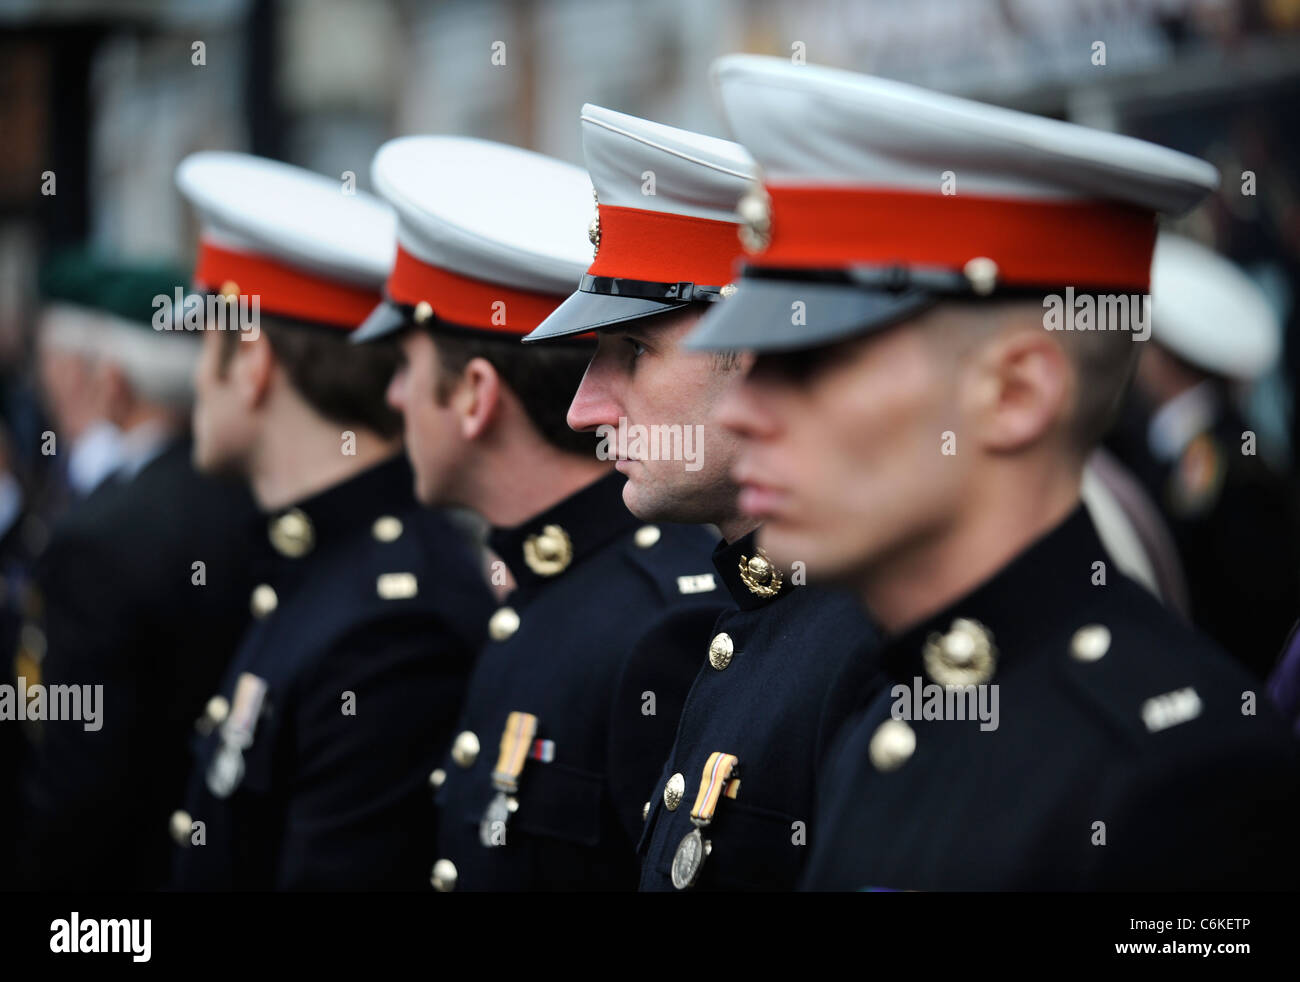 Royal Marines in dress uniform amongst mourners gathered for a repatriation ceremony at Wootton Bassett, Wiltshire - Stock Image